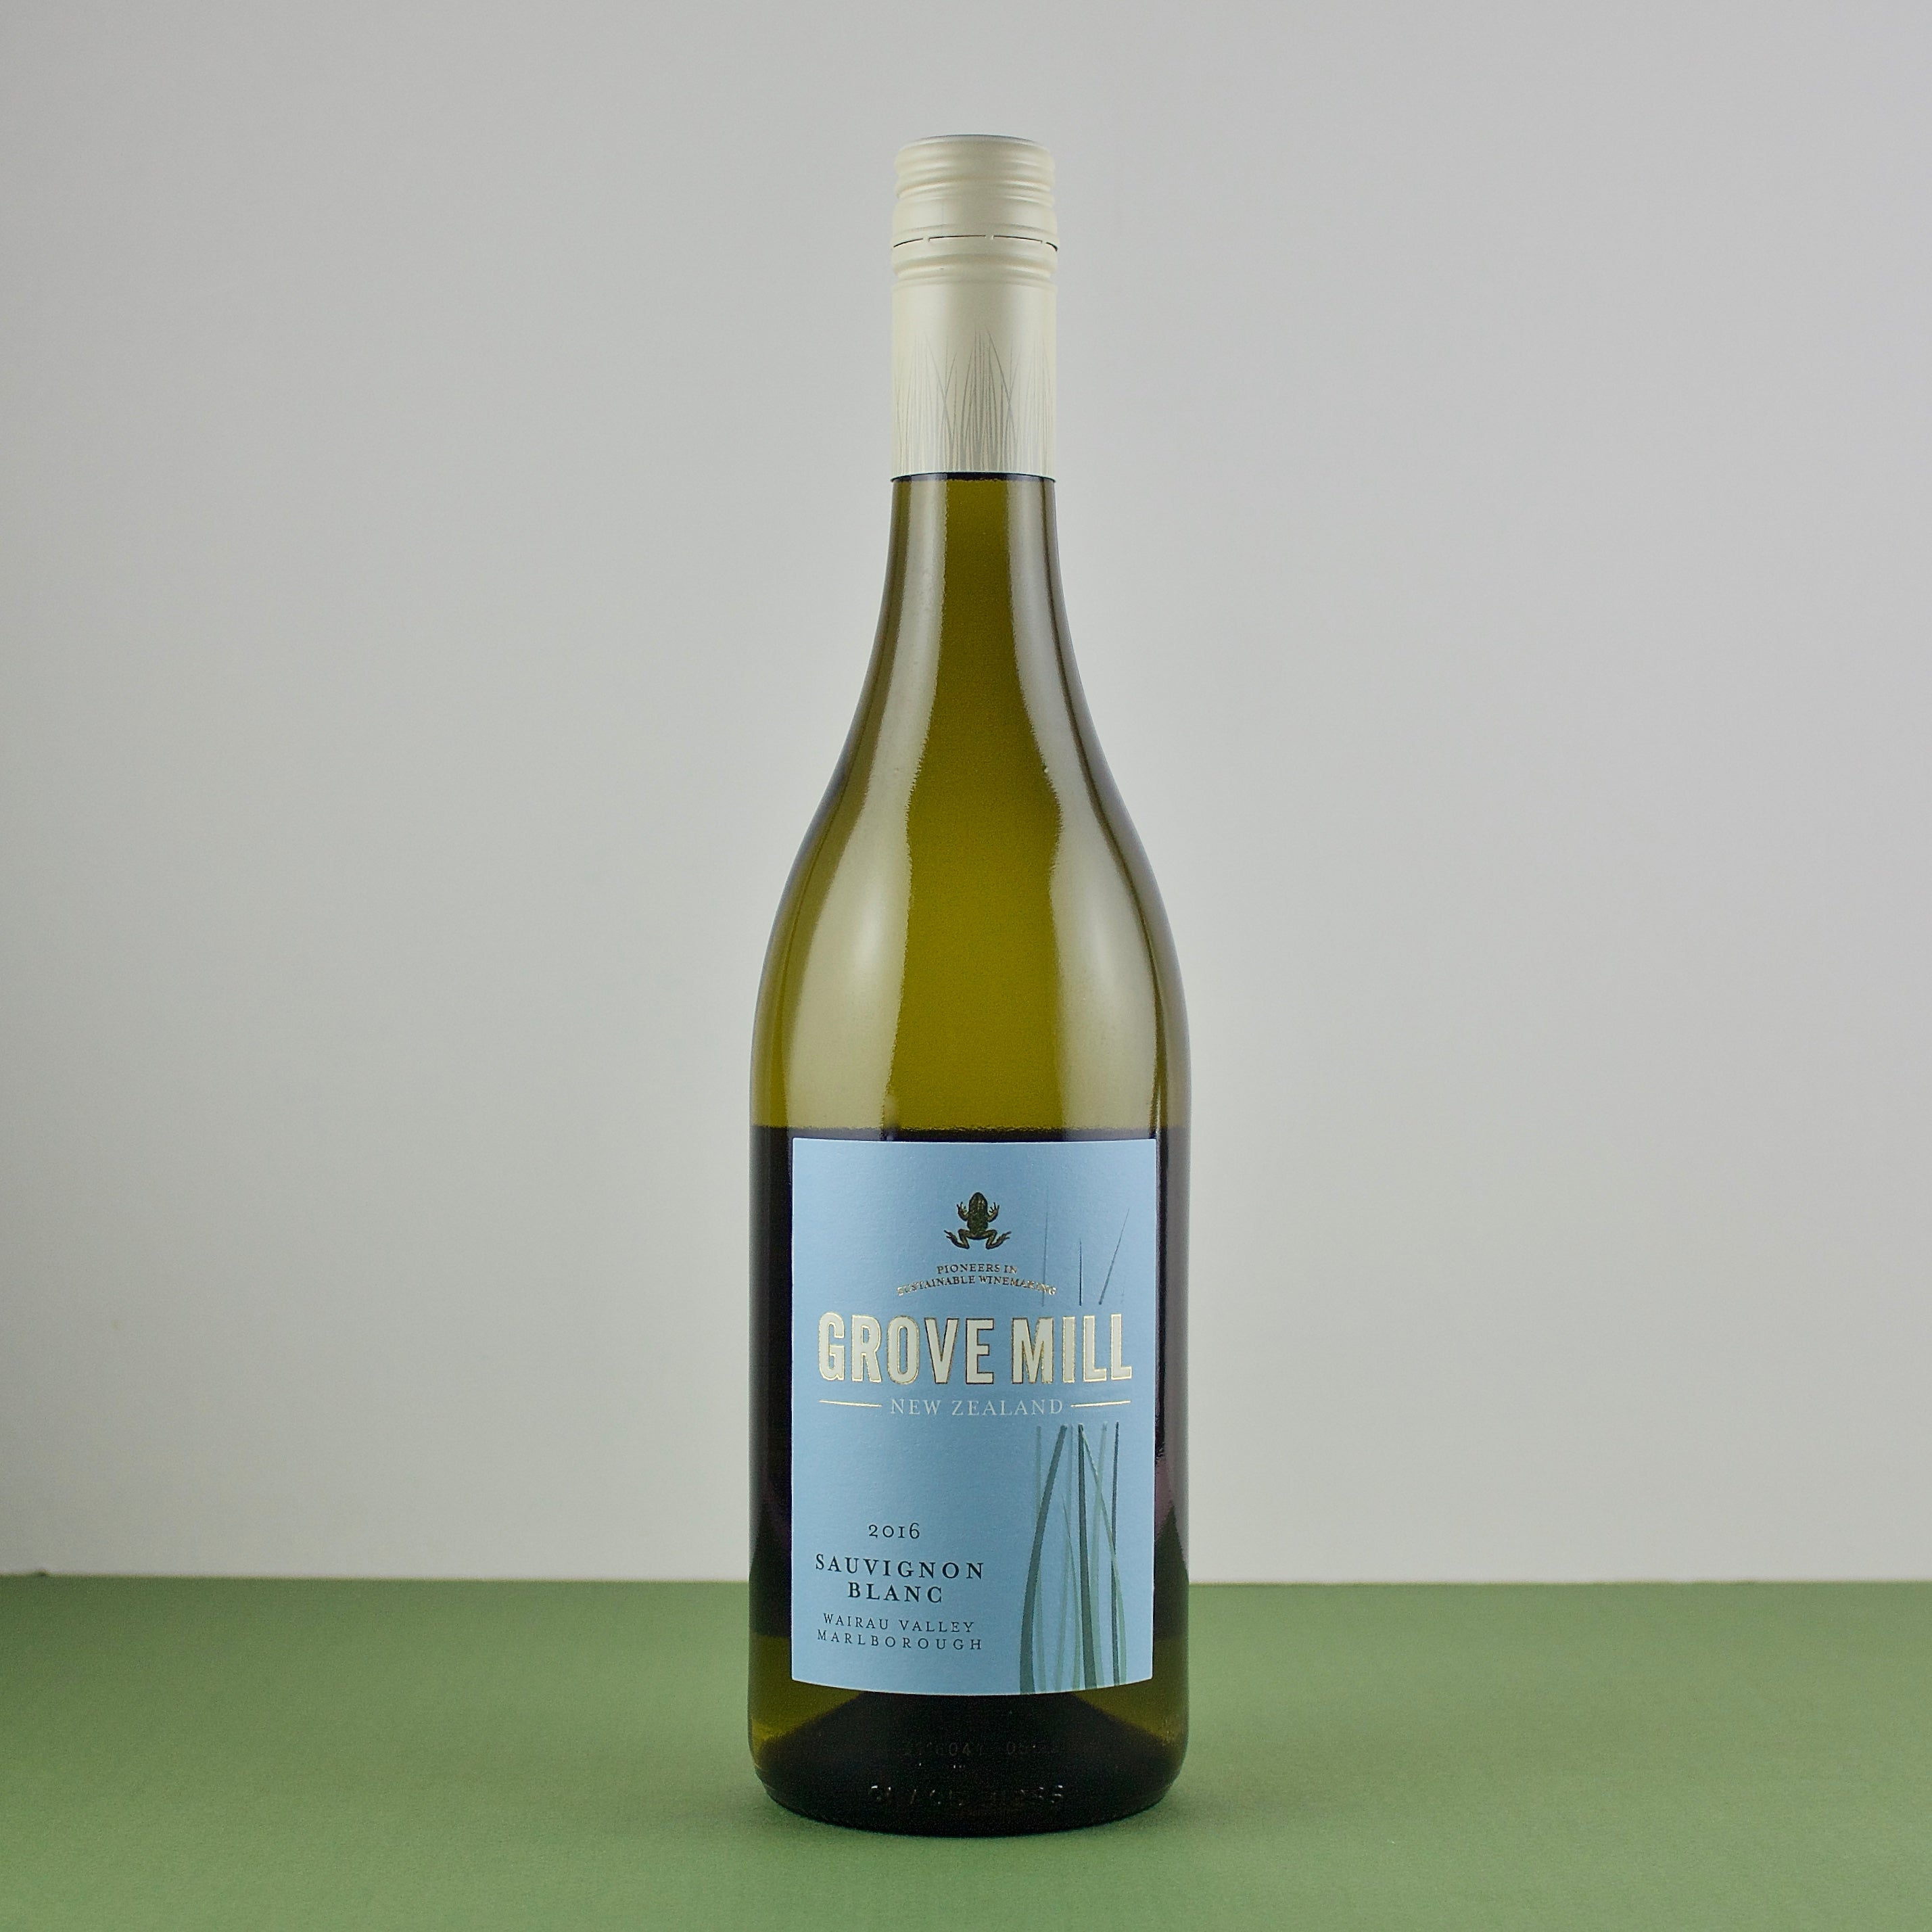 Sauvignon Blanc, Grove Mill, Marlborough, New Zealand